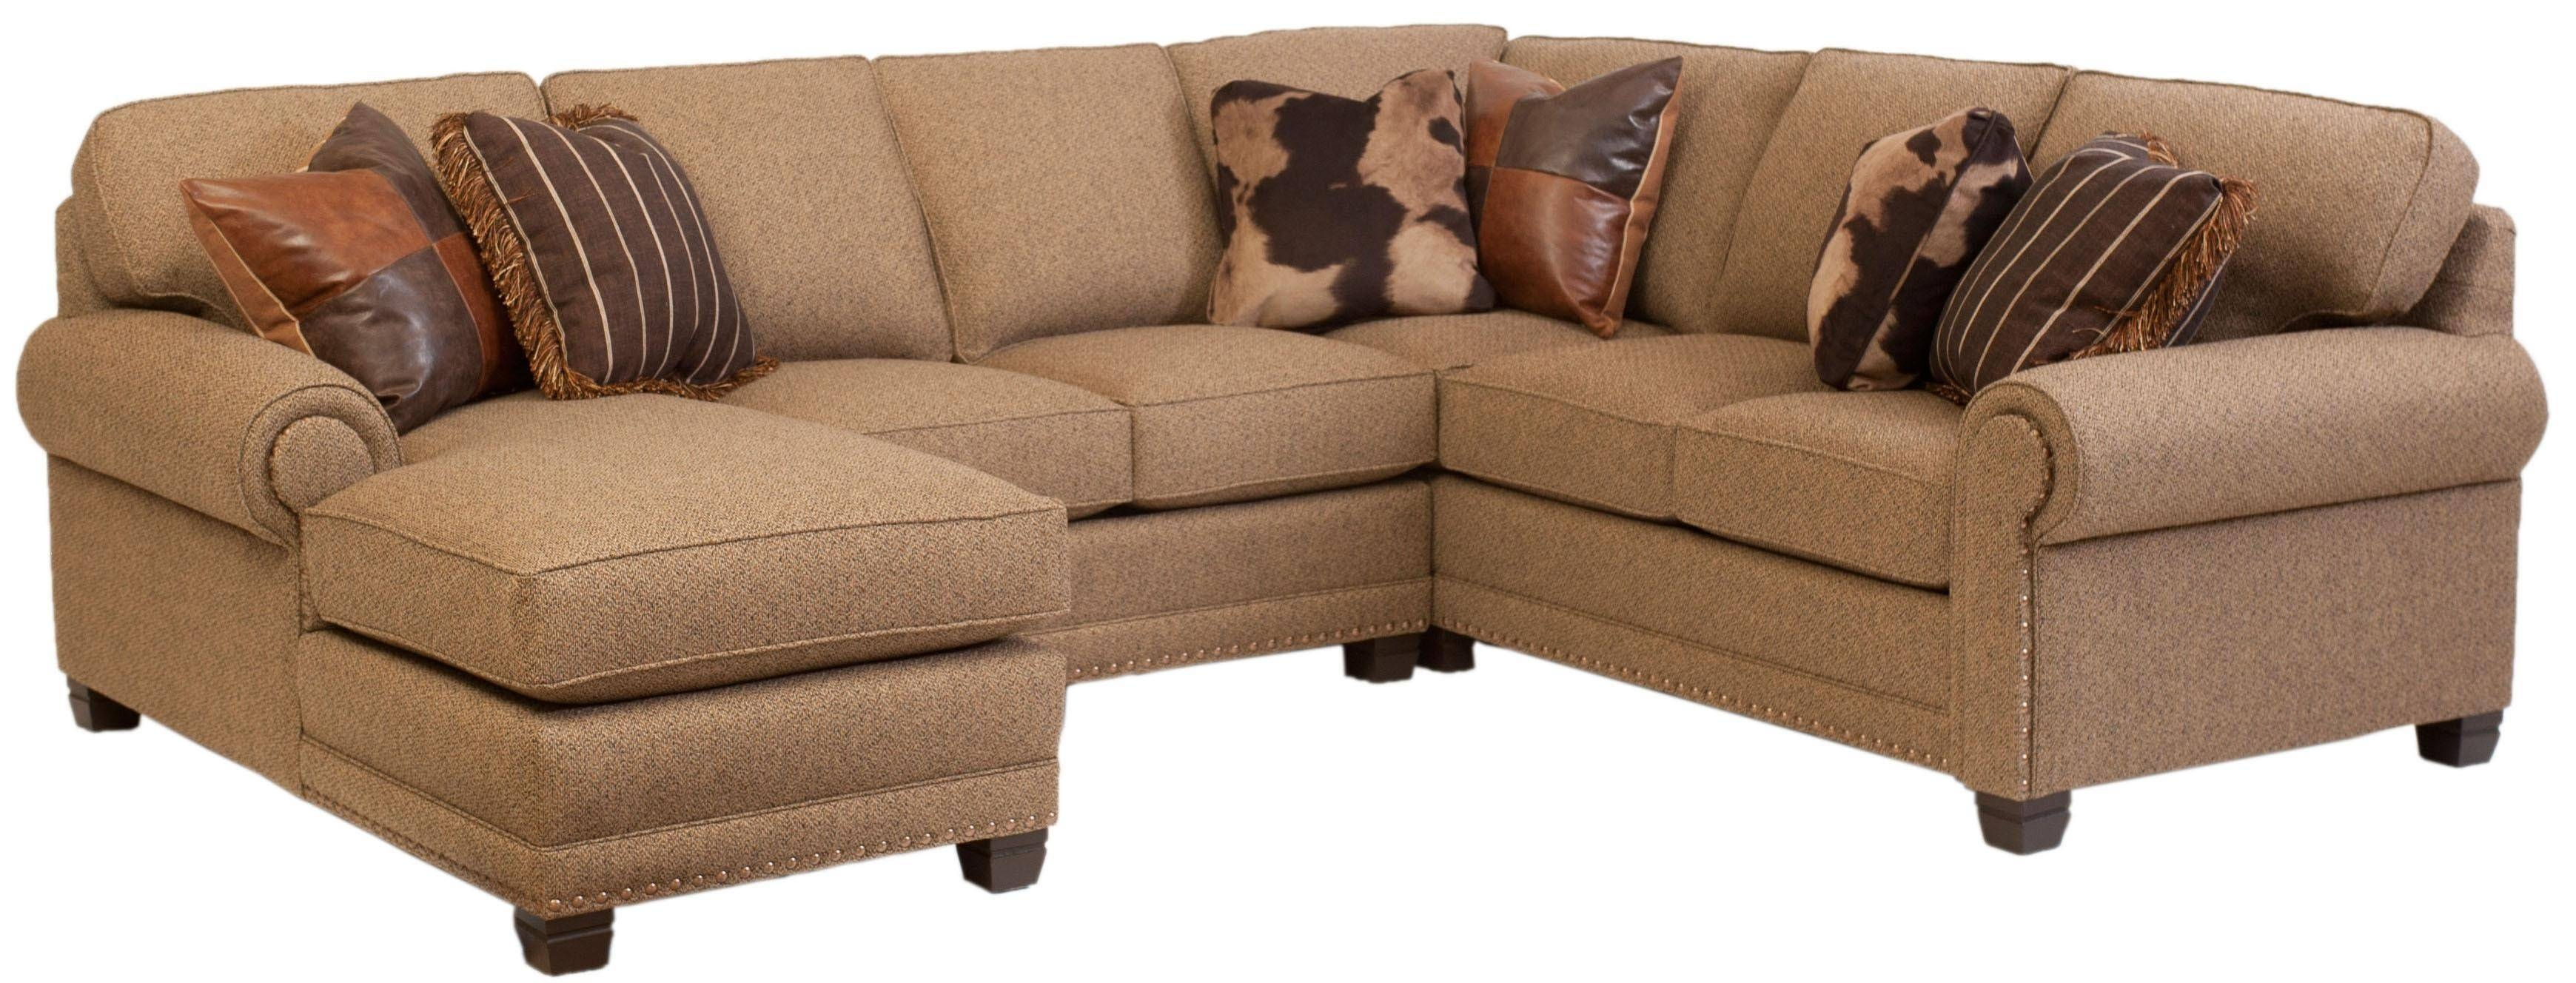 Most Comfortable Sofa Depth Unusual Living Room Oversized Couch with Unusual Sofa (Image 2 of 23)